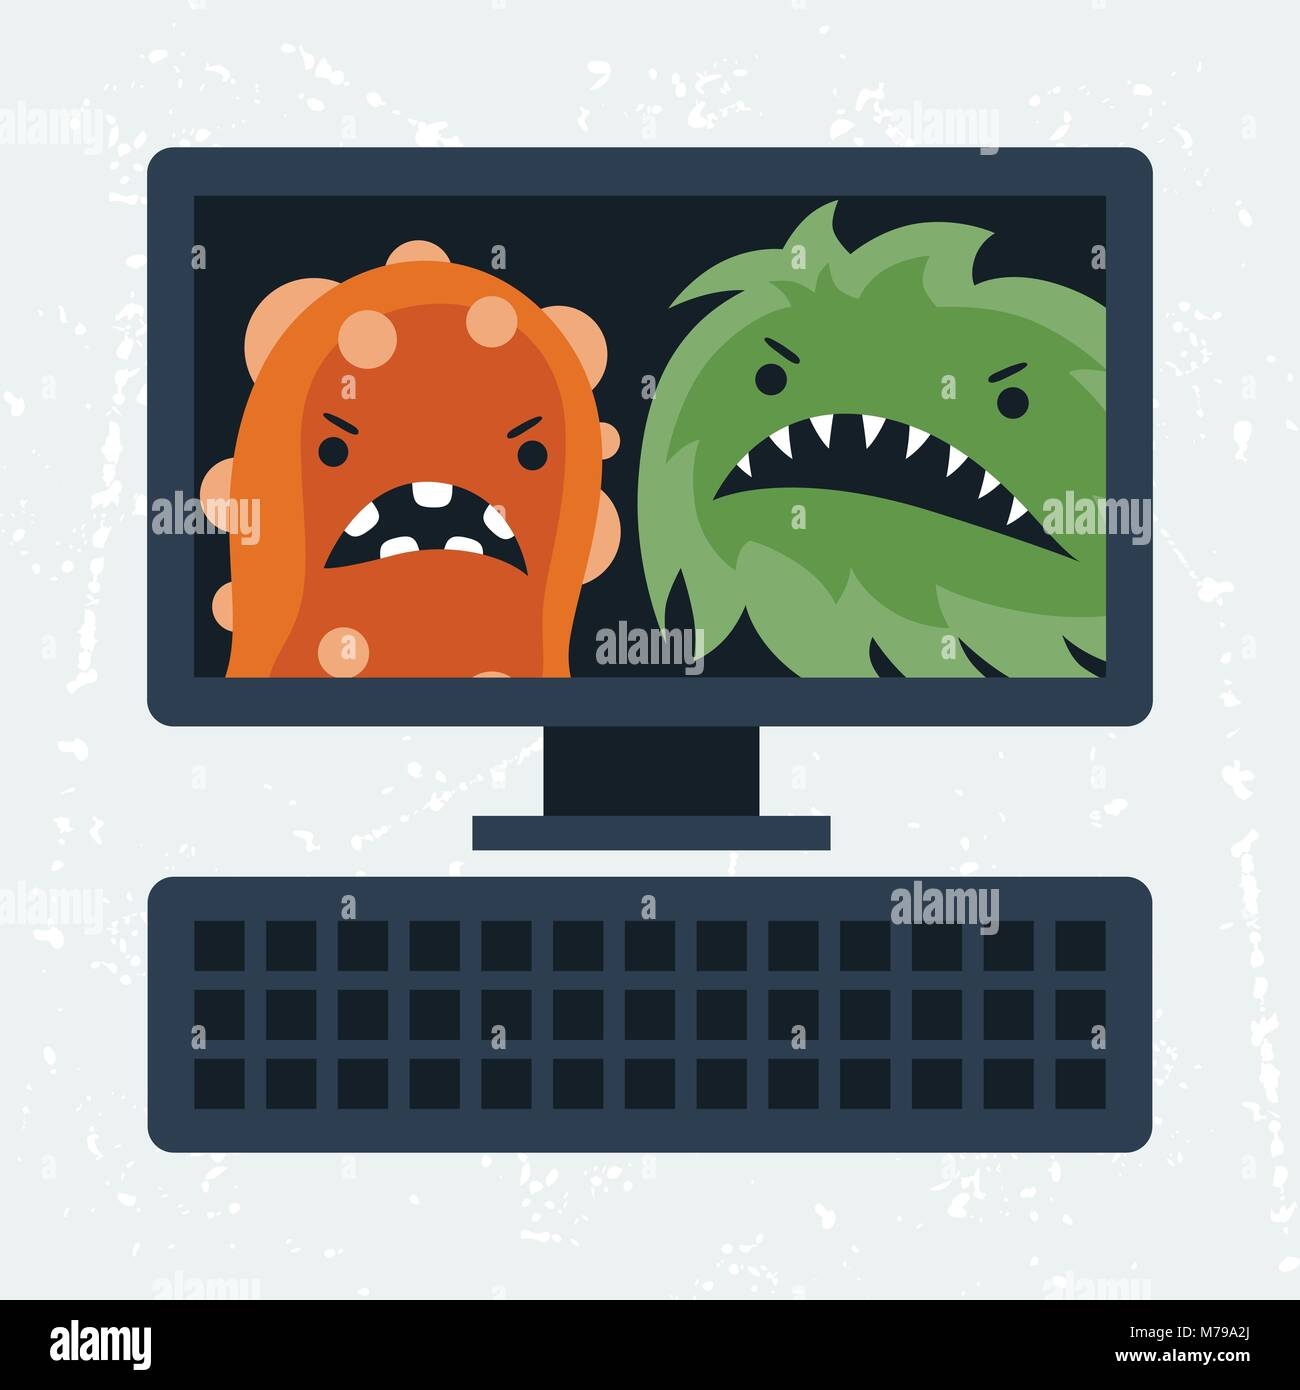 Abstract illustration computer infected with viruses. - Stock Image